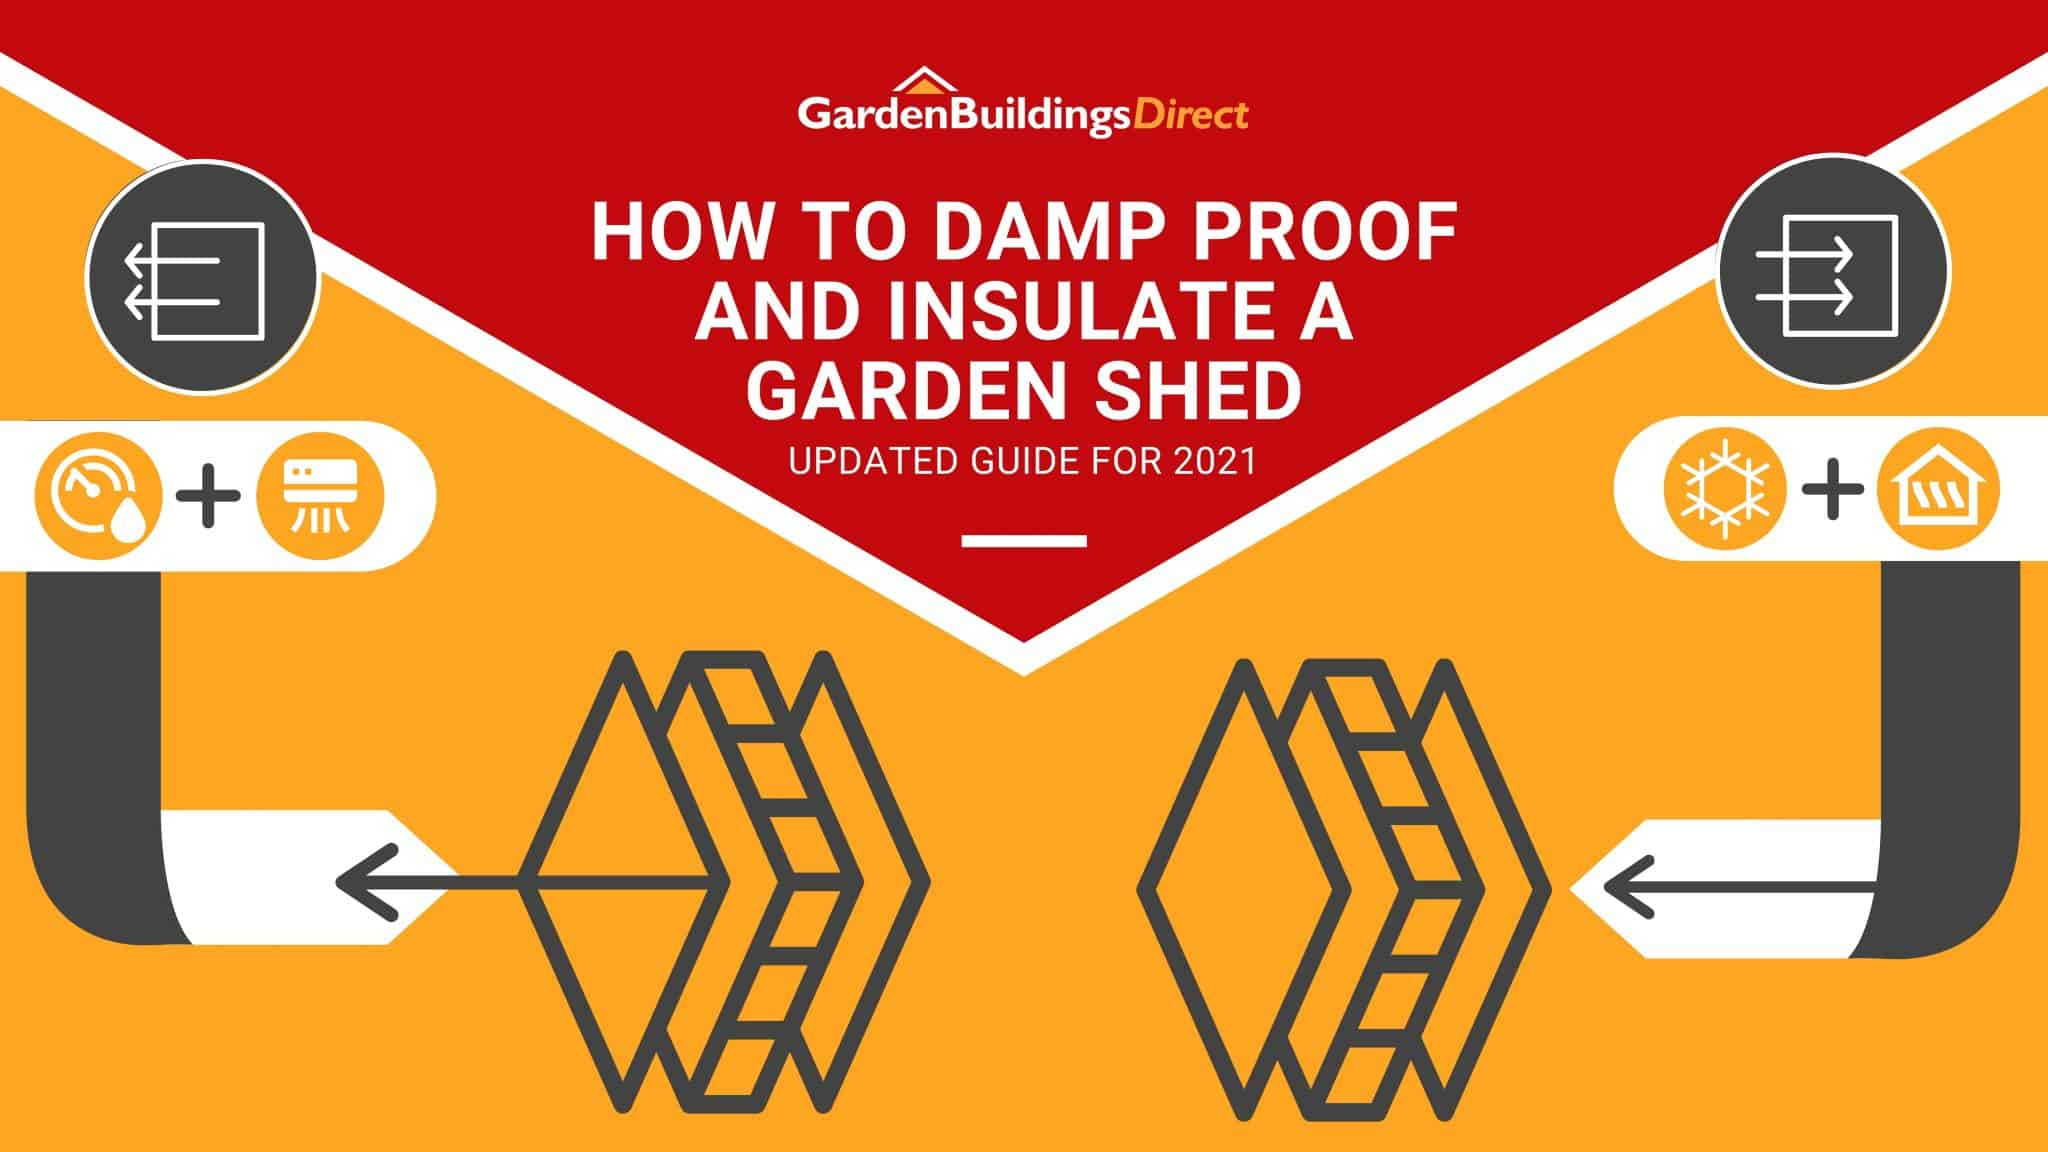 How to damp proof and insulate a garden shed Garden Buildings Direct titlecard with cross-sections of sheds and arrows pointing to insulation and airflow with title on red arrow coming top from top of image on a yellow background